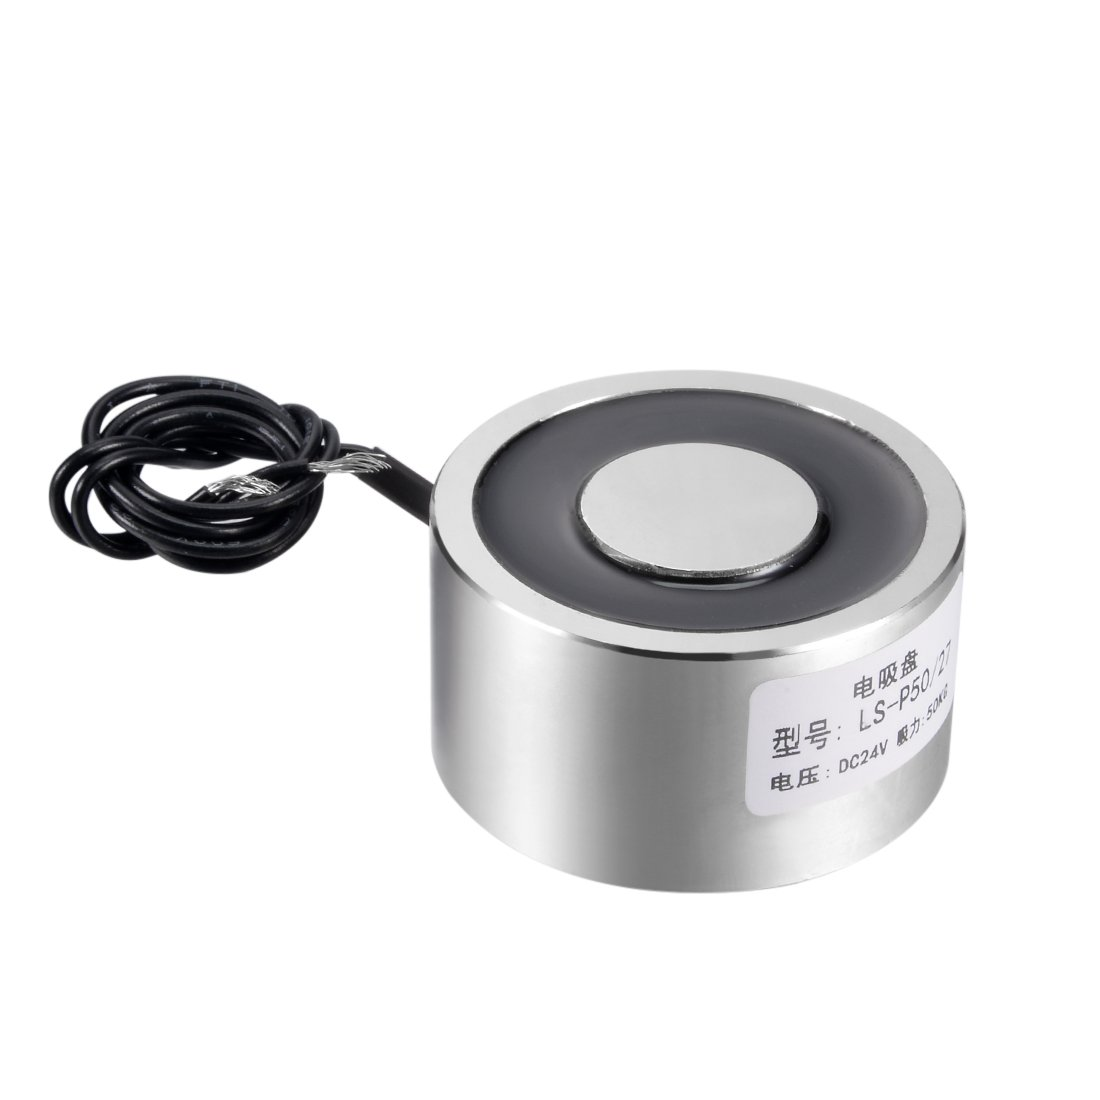 uxcell 50mm x 27mm DC24V 0.34A 8.16W 500N Sucking Disc Solenoid Lift Holding Electromagnet